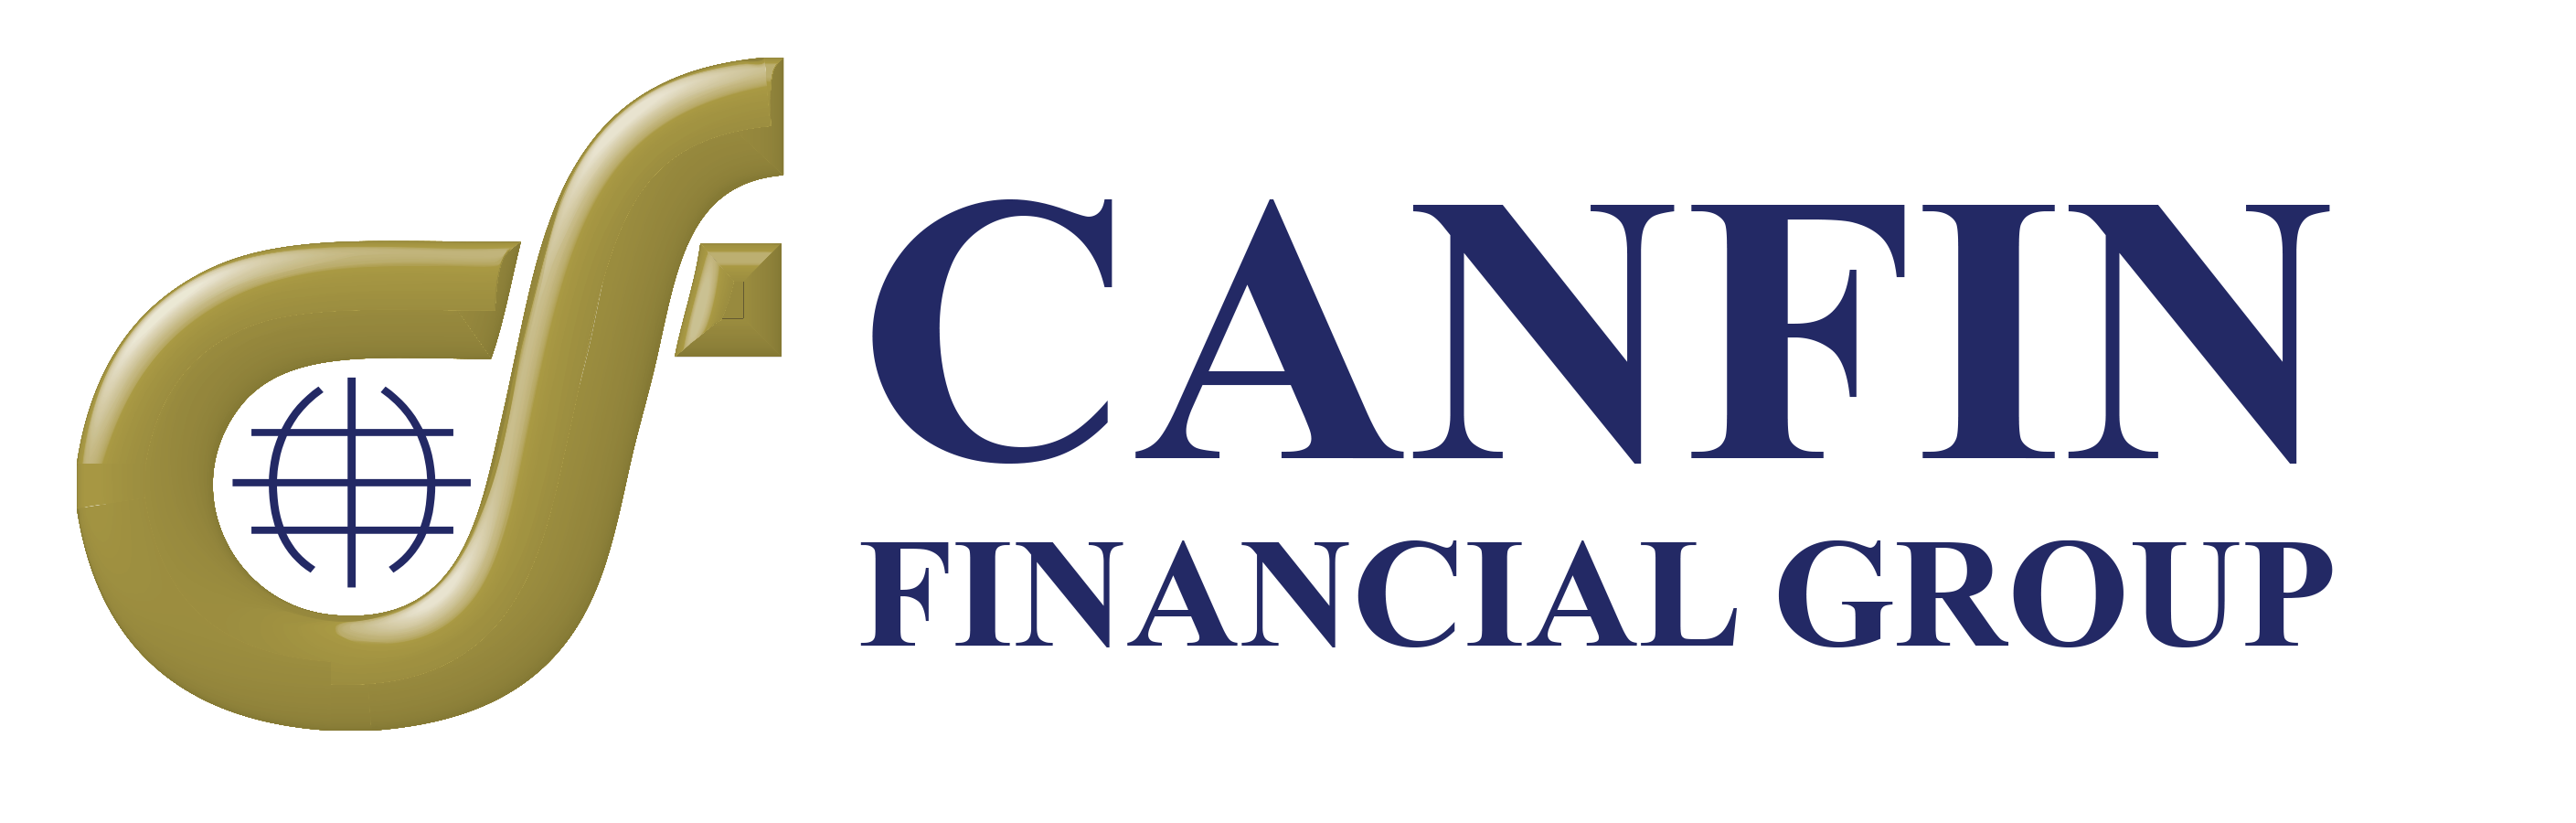 Varughese Cherian - CANFIN Financial Group - Logo